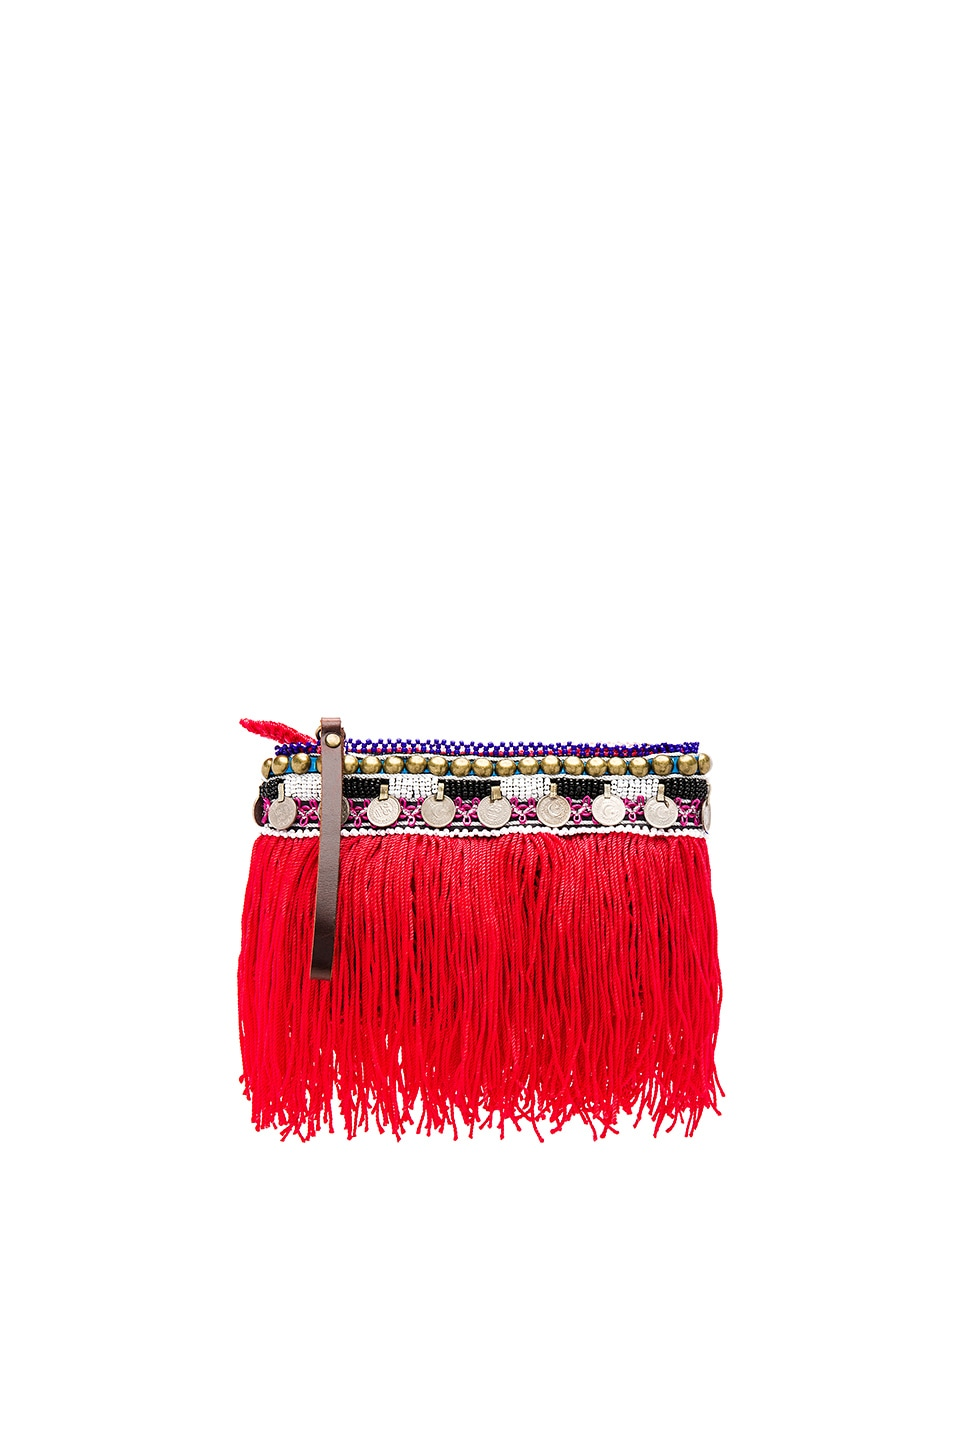 Indie Beaded Pouch by Elliot Mann